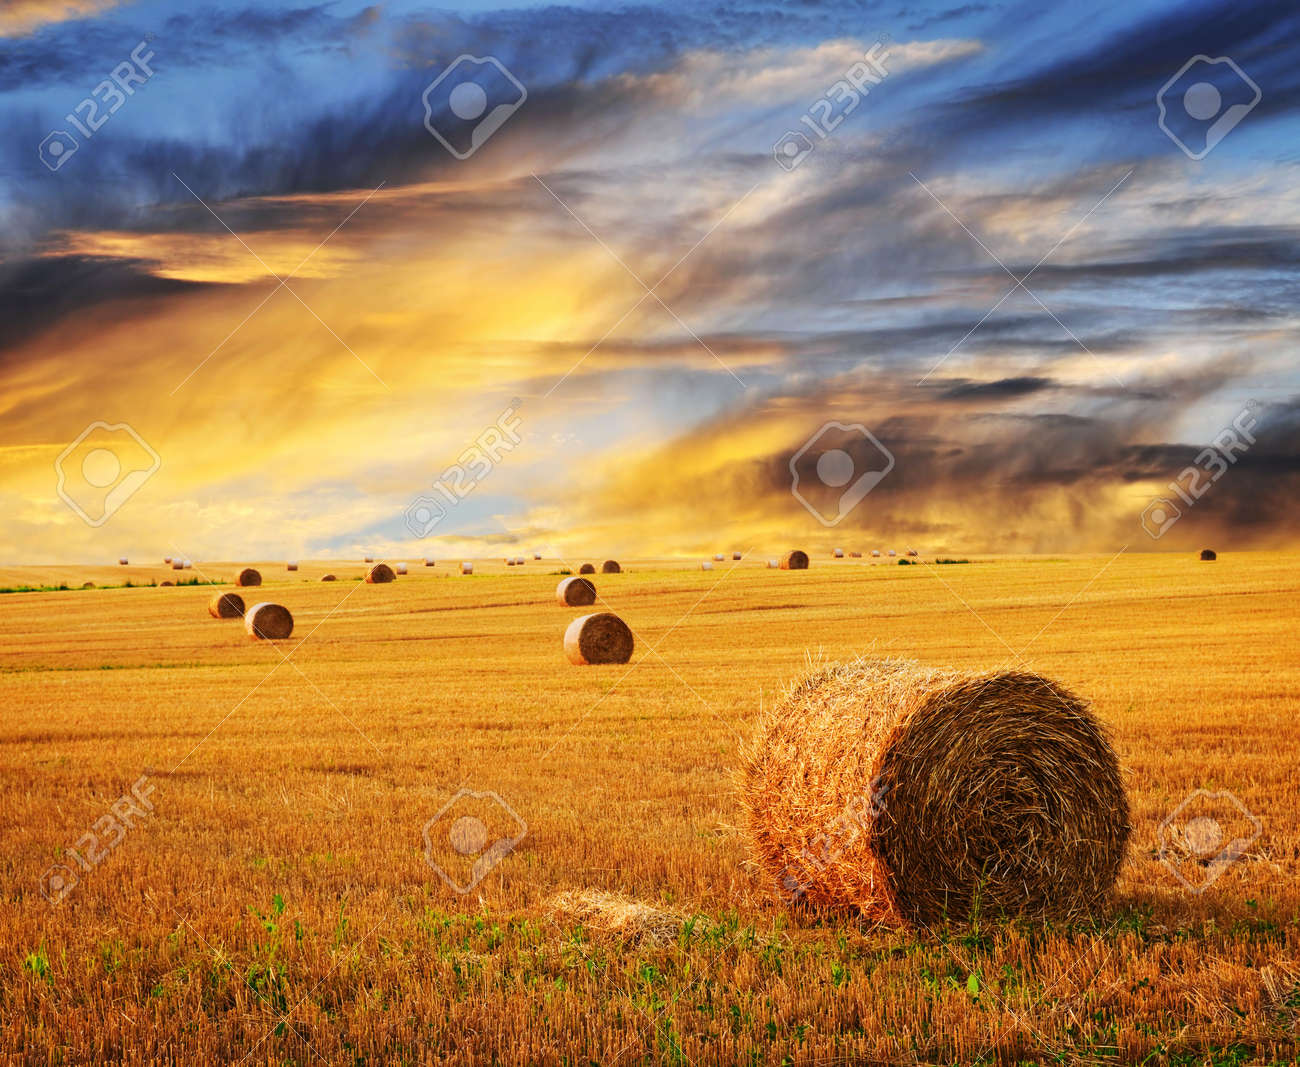 Golden sunset over farm field with hay bales Stock Photo - 6278629